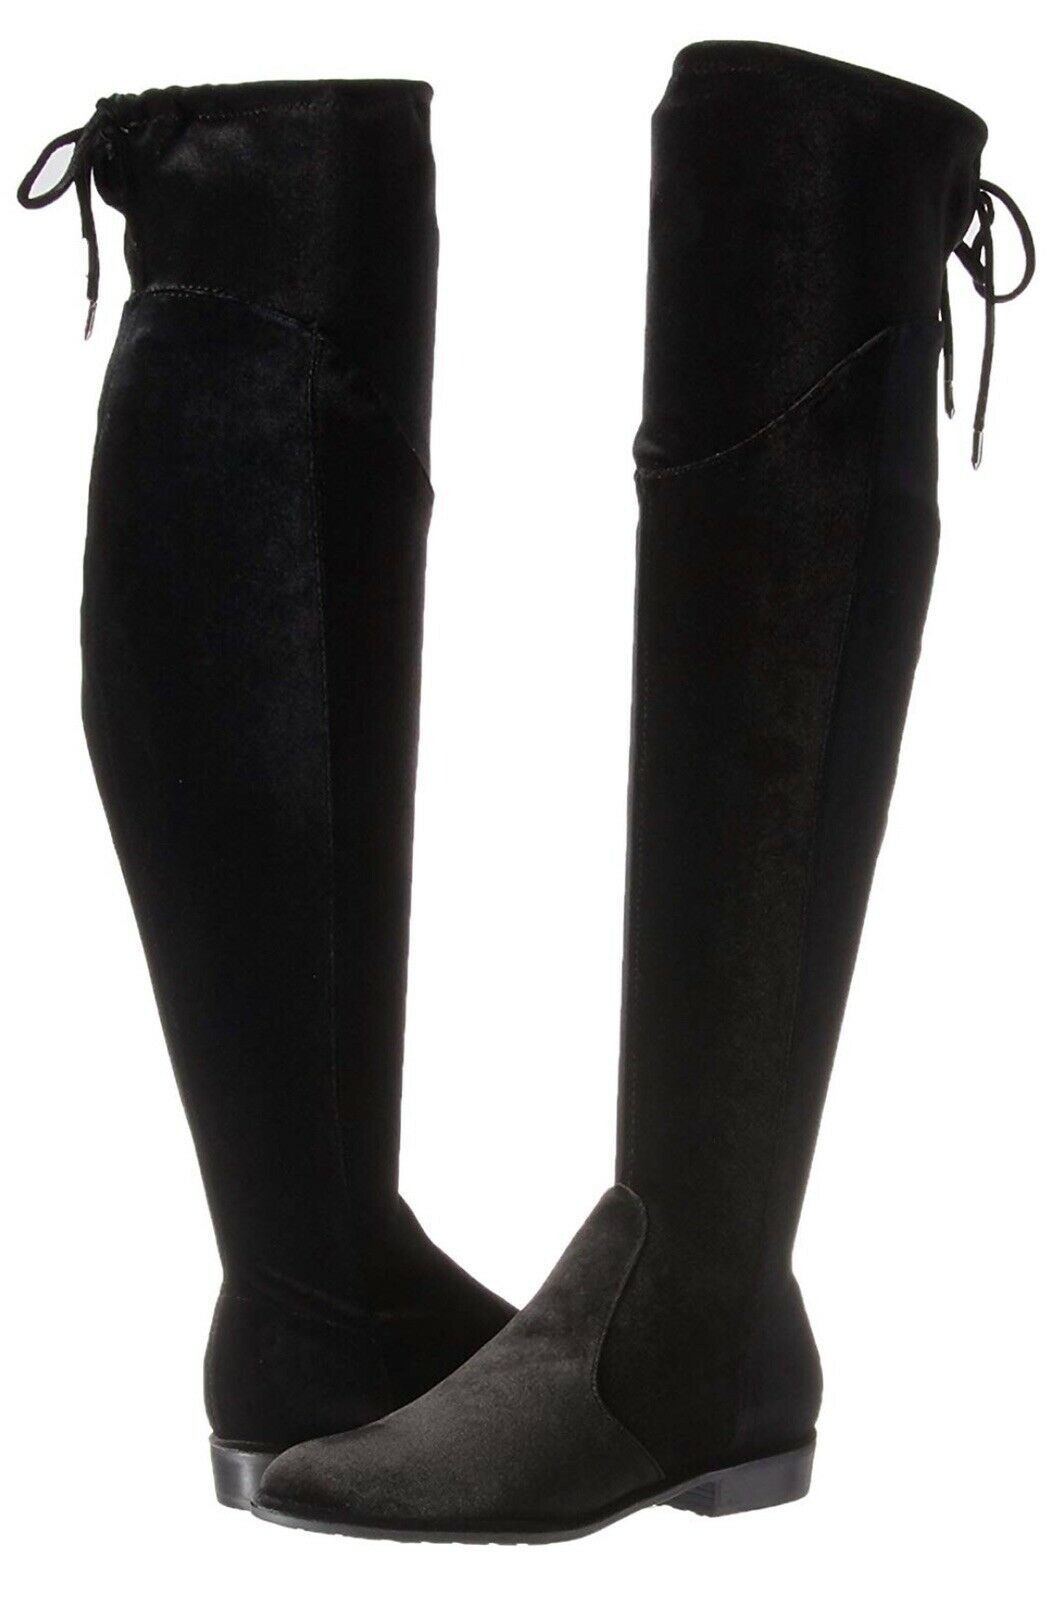 Marc Marc Marc Fisher Faux Suede Velvet Over-the-Knee Boots Hulie Black 10 M NEW A295022 2c2290